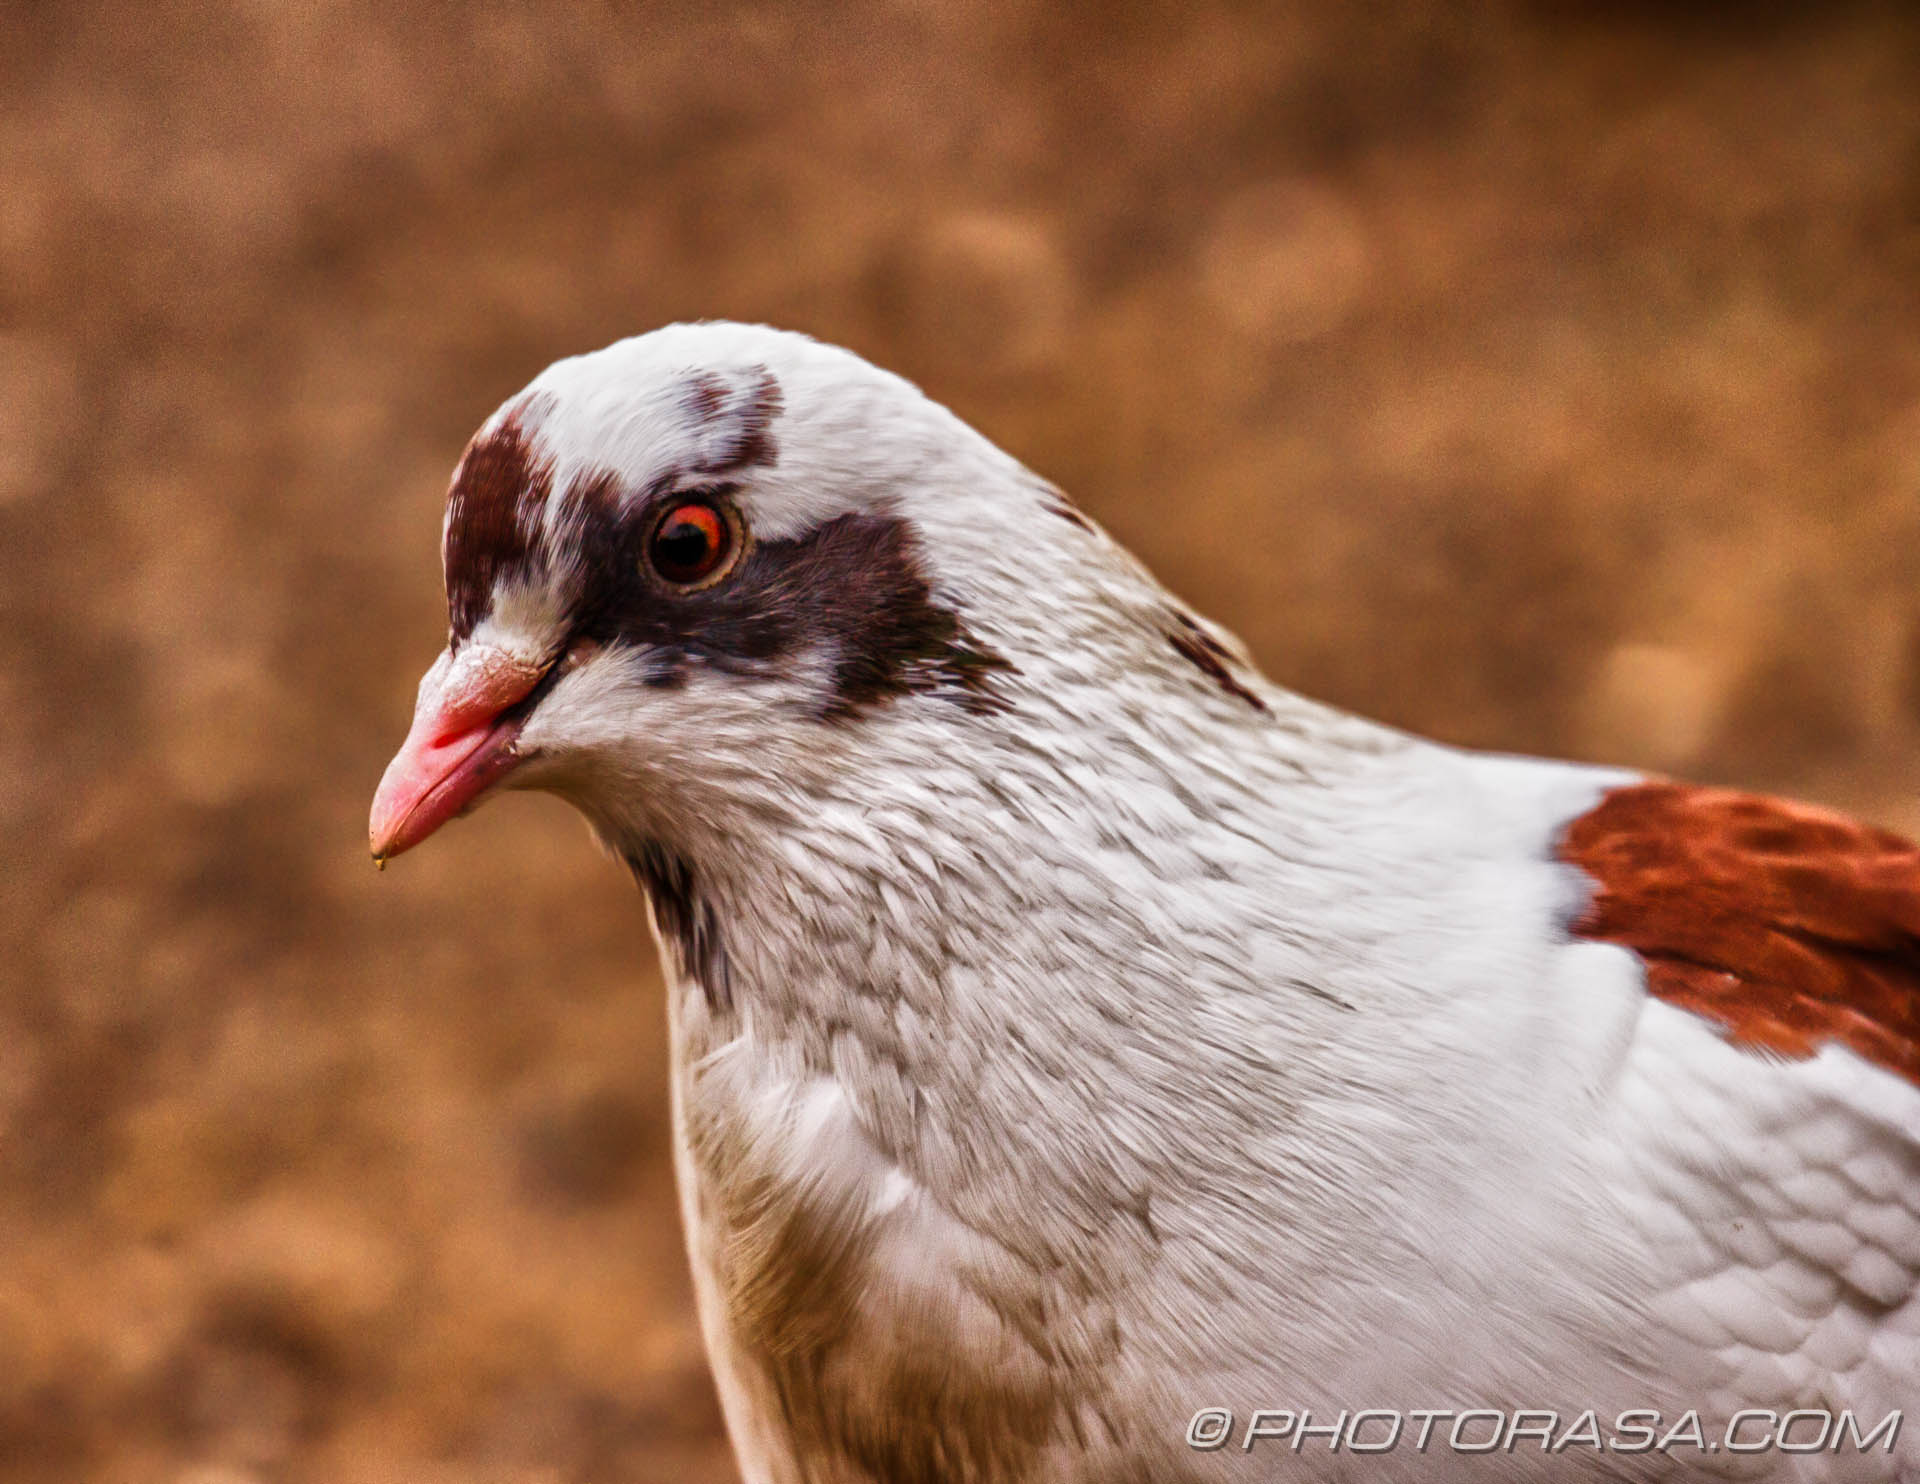 http://photorasa.com/hdr-birds/hdr-white-brown-and-grey-speckled-pigeon/